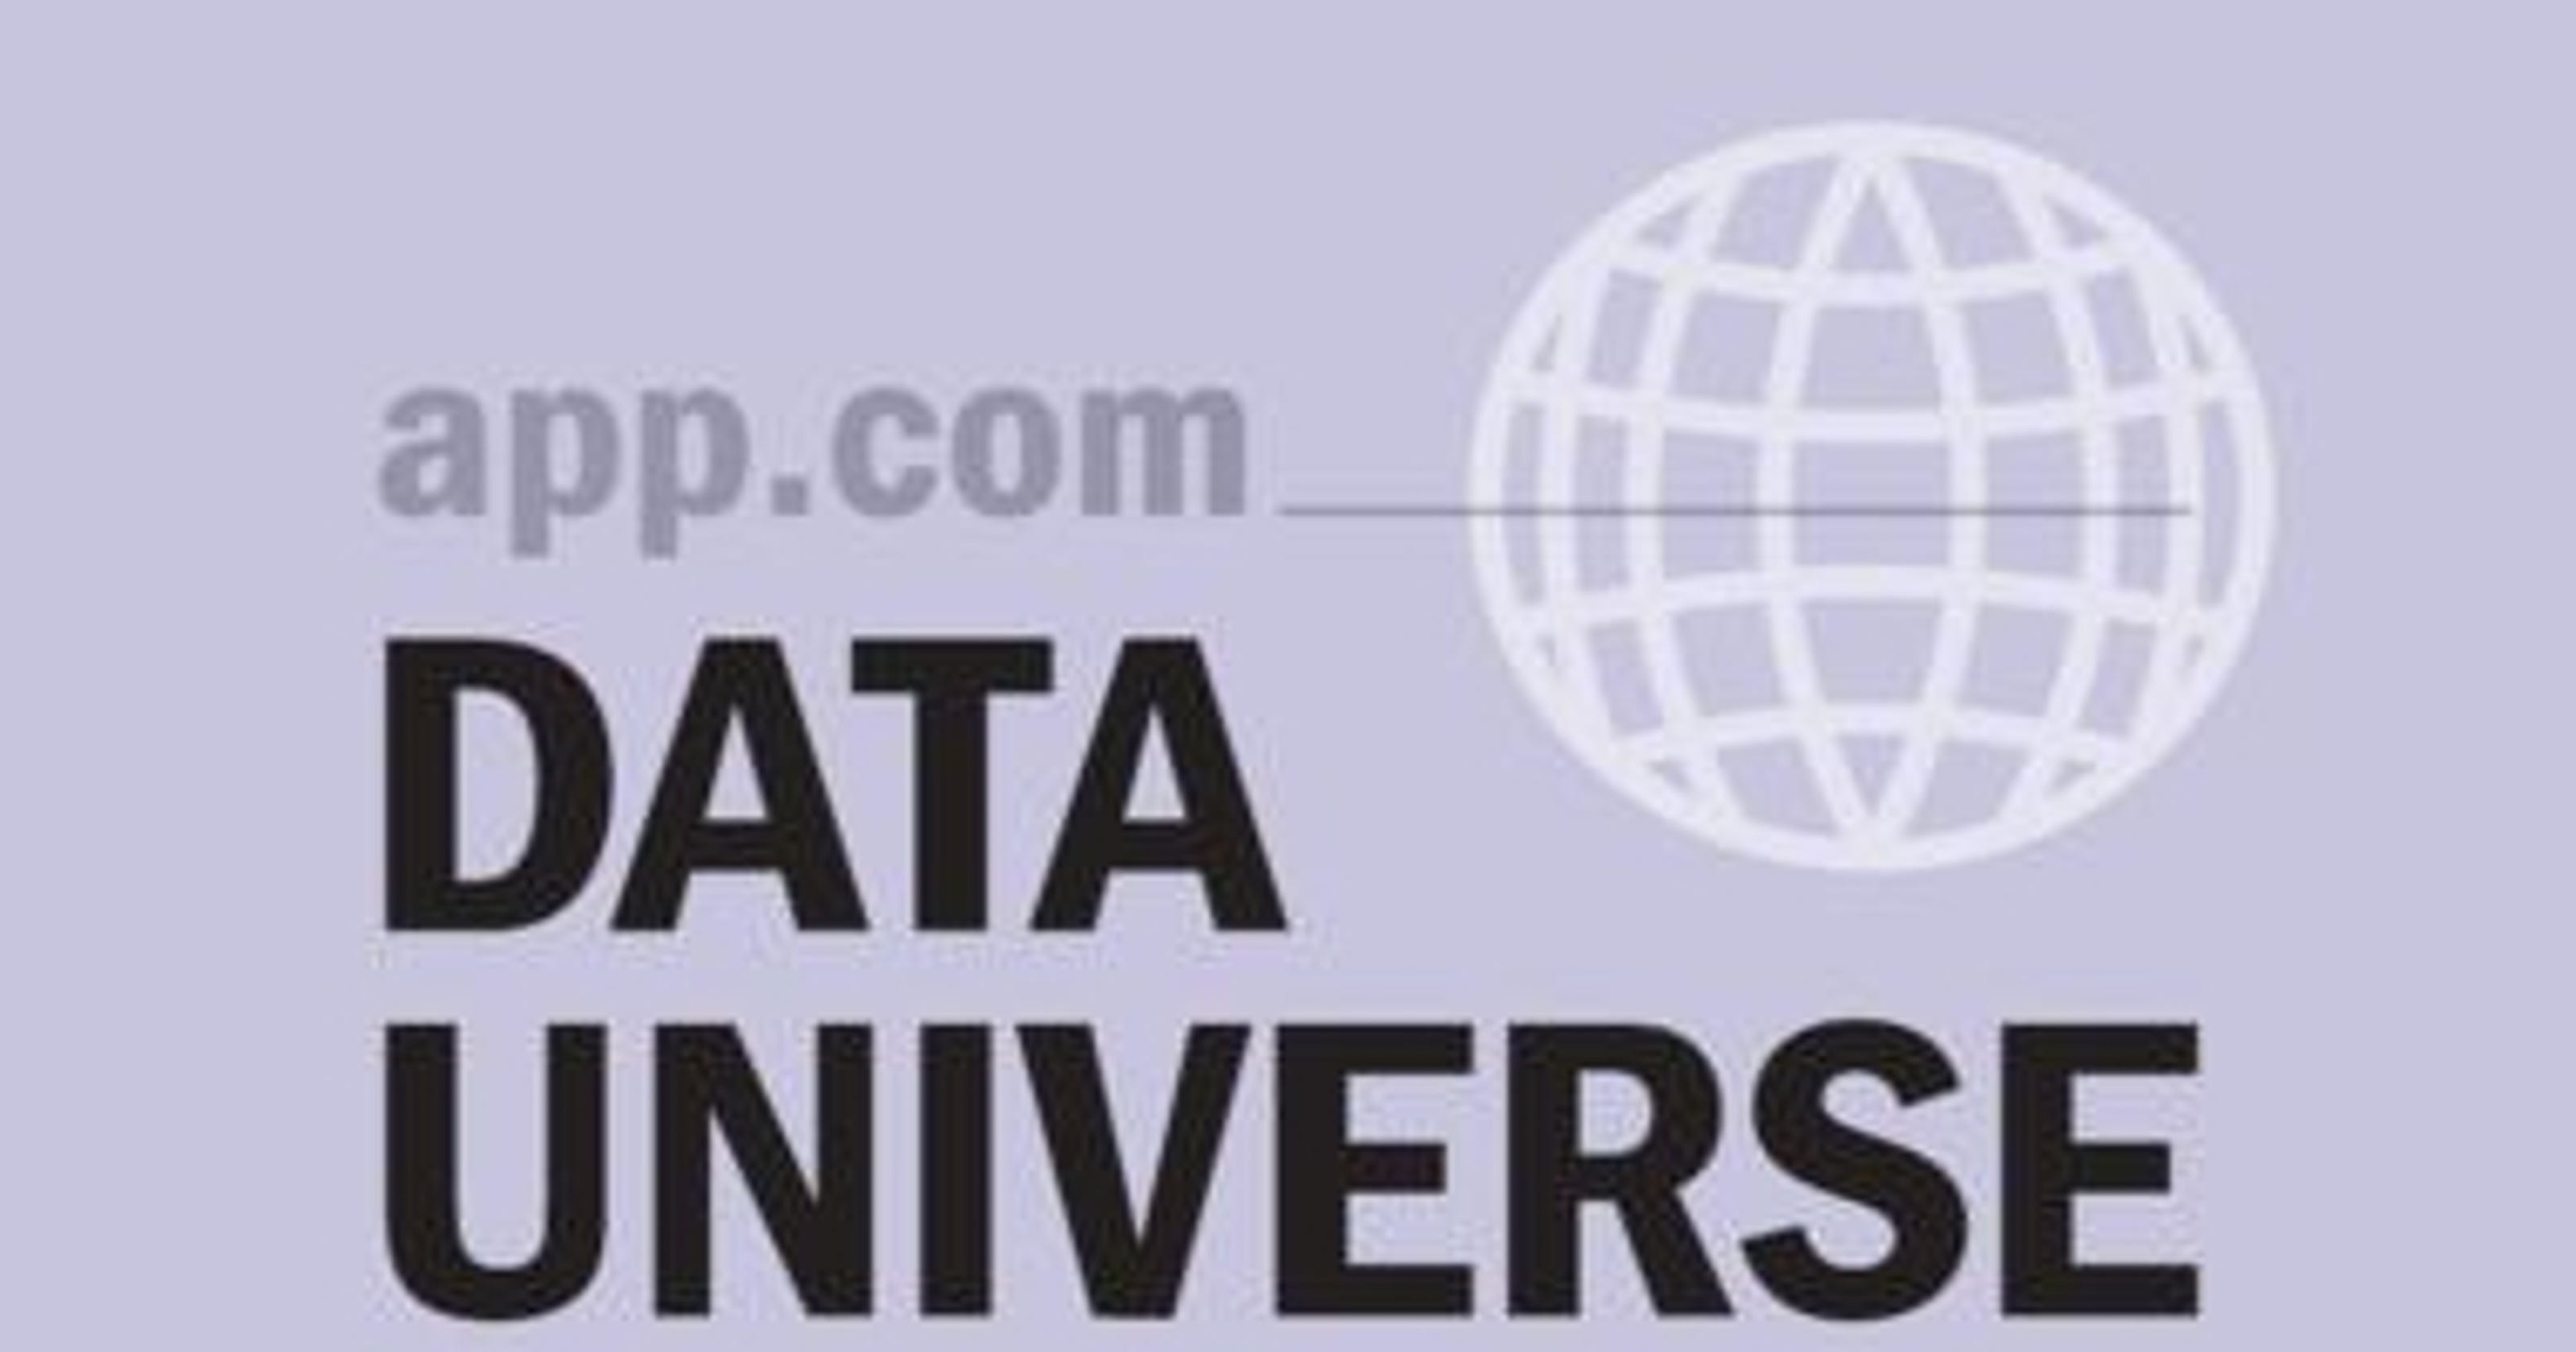 DataUniverse: Start searching millions of public records